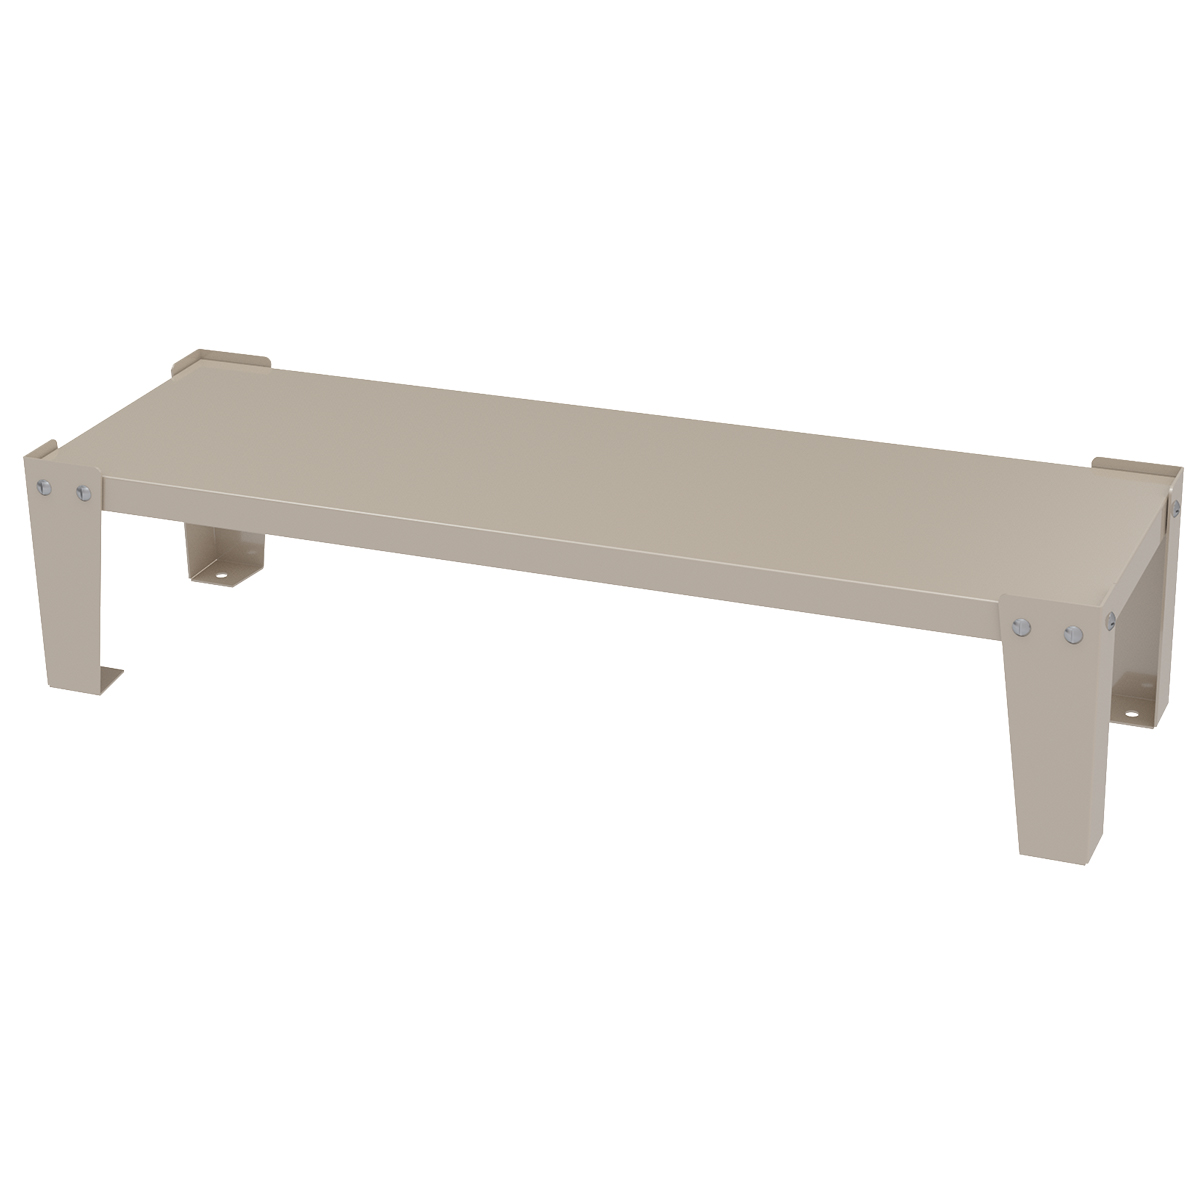 Item DISCONTINUED by Manufacturer.  Base Stand for Cabinet, 35x11x8, Putty.  This item sold in carton quantities of 1.